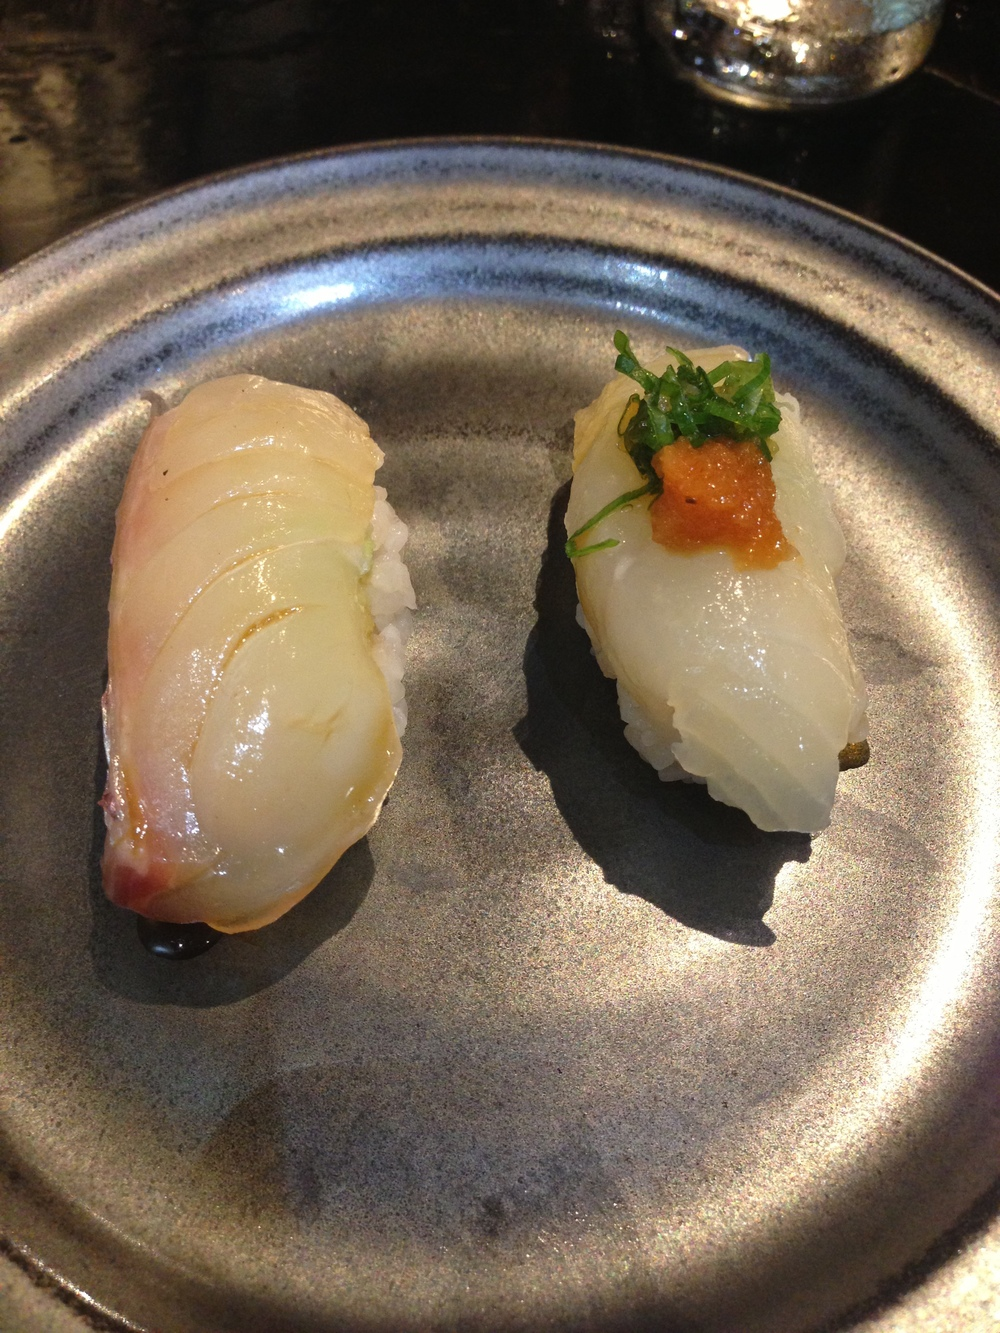 halibut and red snapper sasabune.jpeg